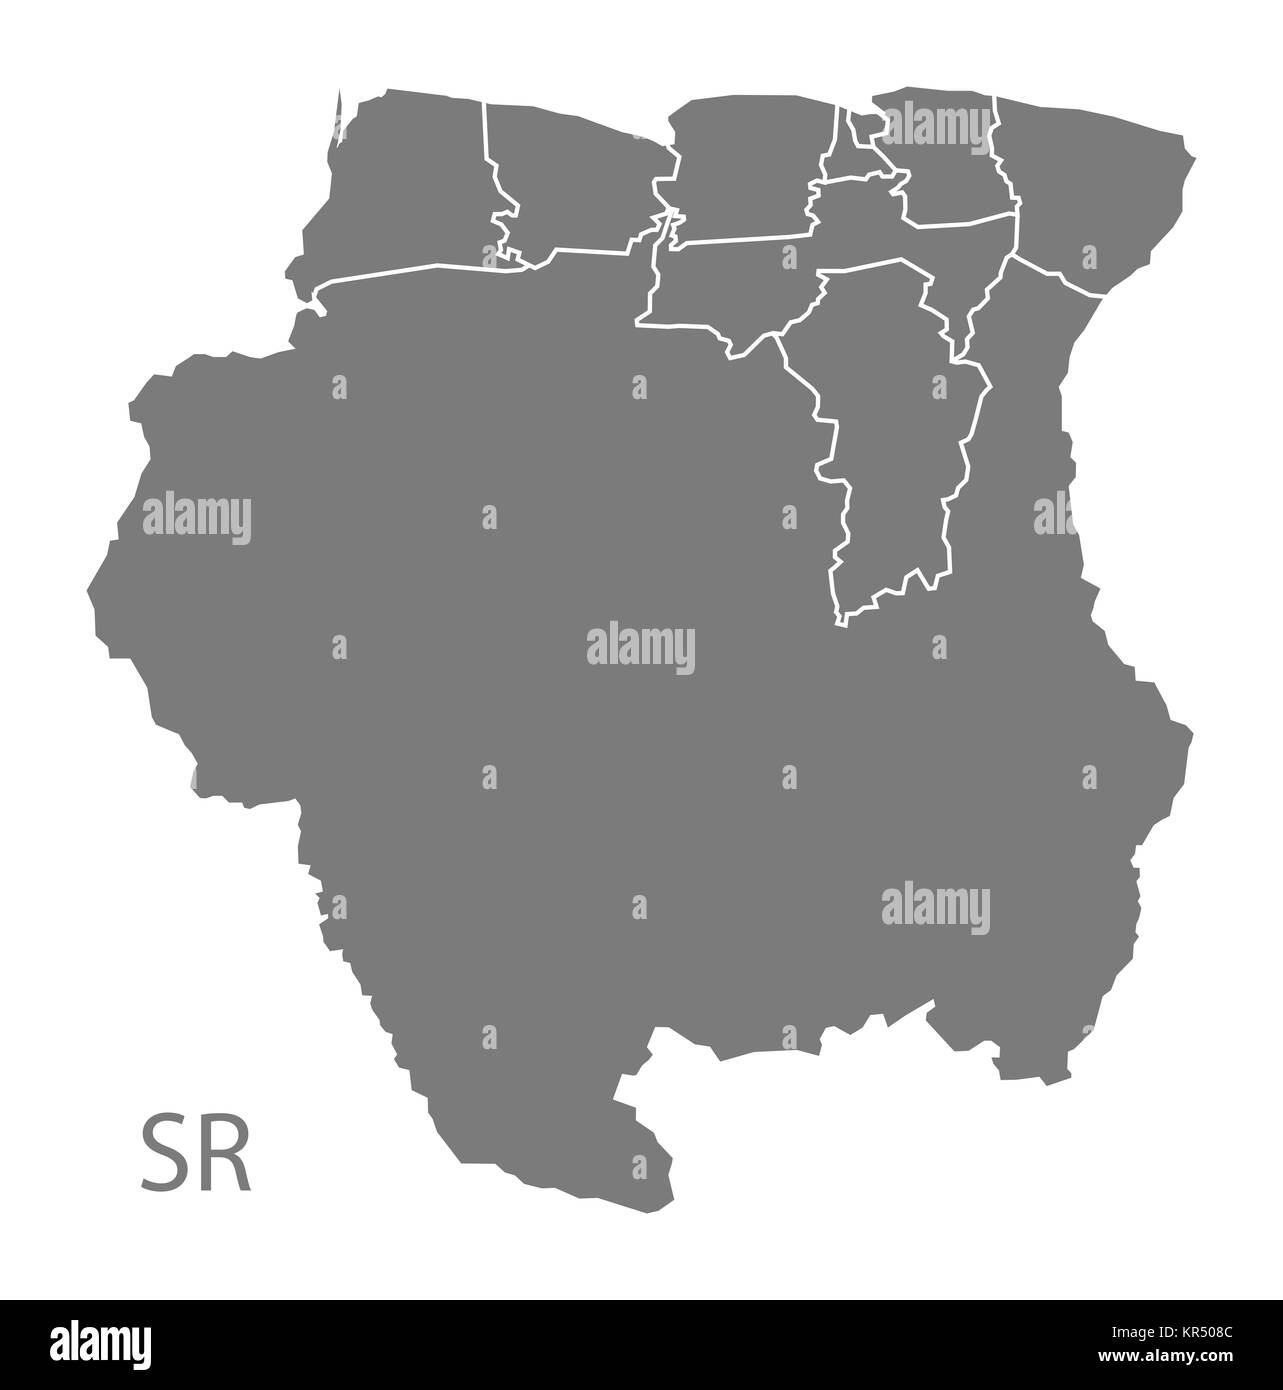 Suriname districts Map grey - Stock Image